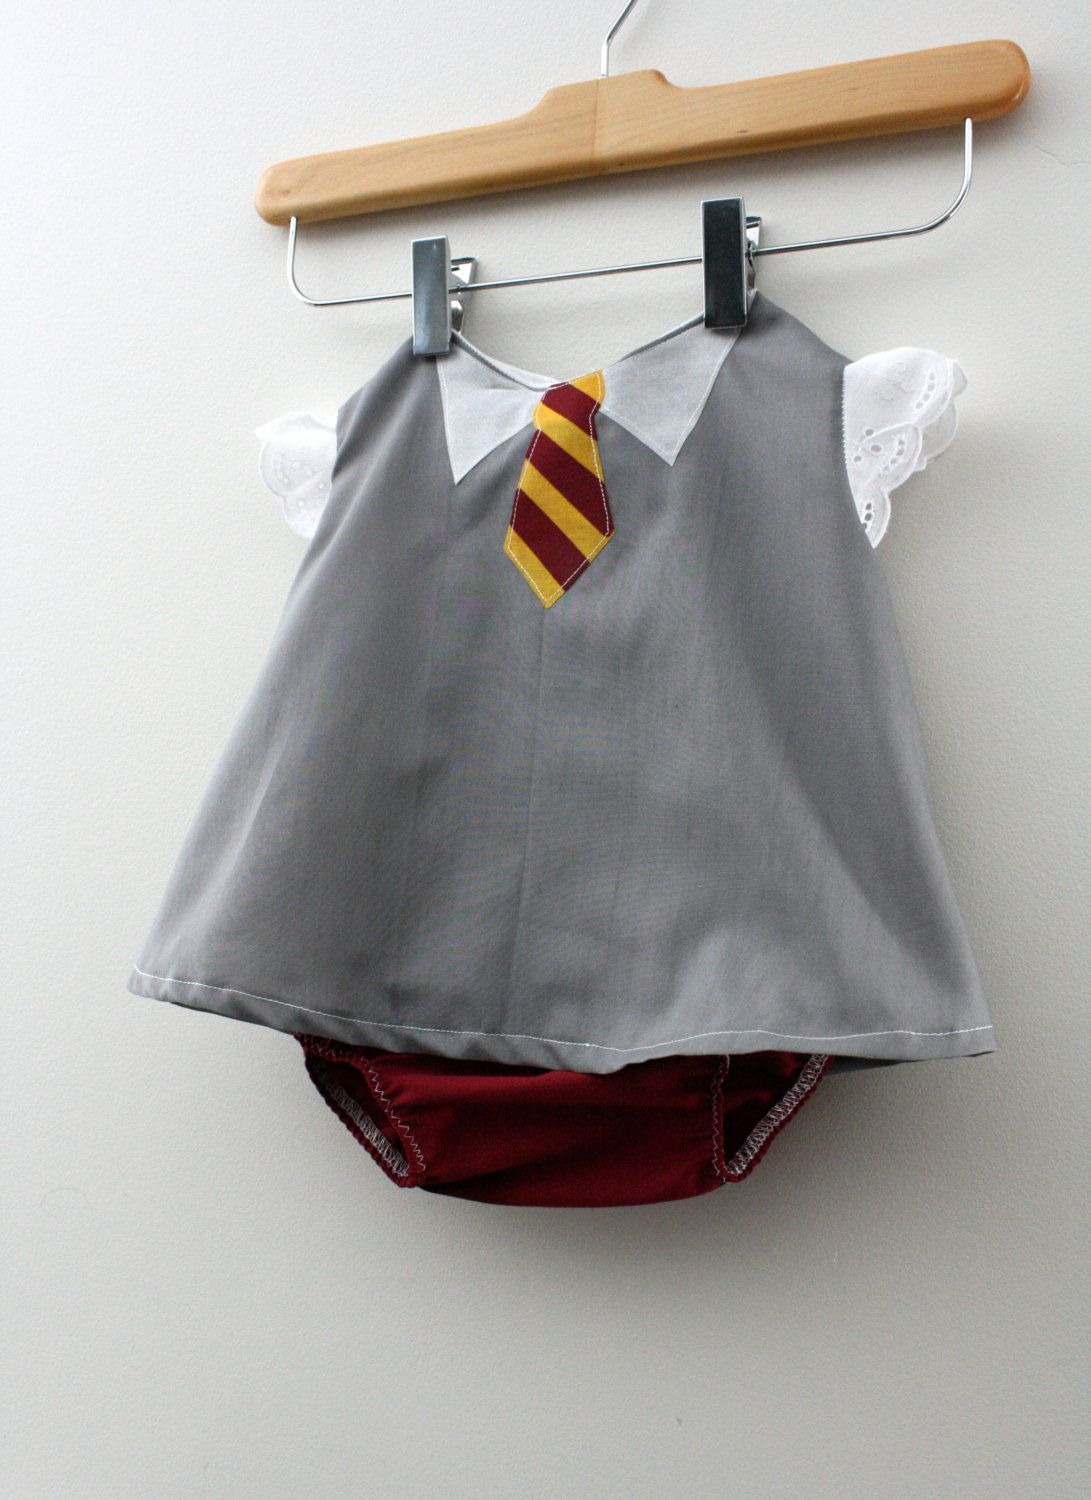 Hogwarts+Gryffindor+Student+Costume++Swing+Top++Shirt+by+RaeGun,+$24.50